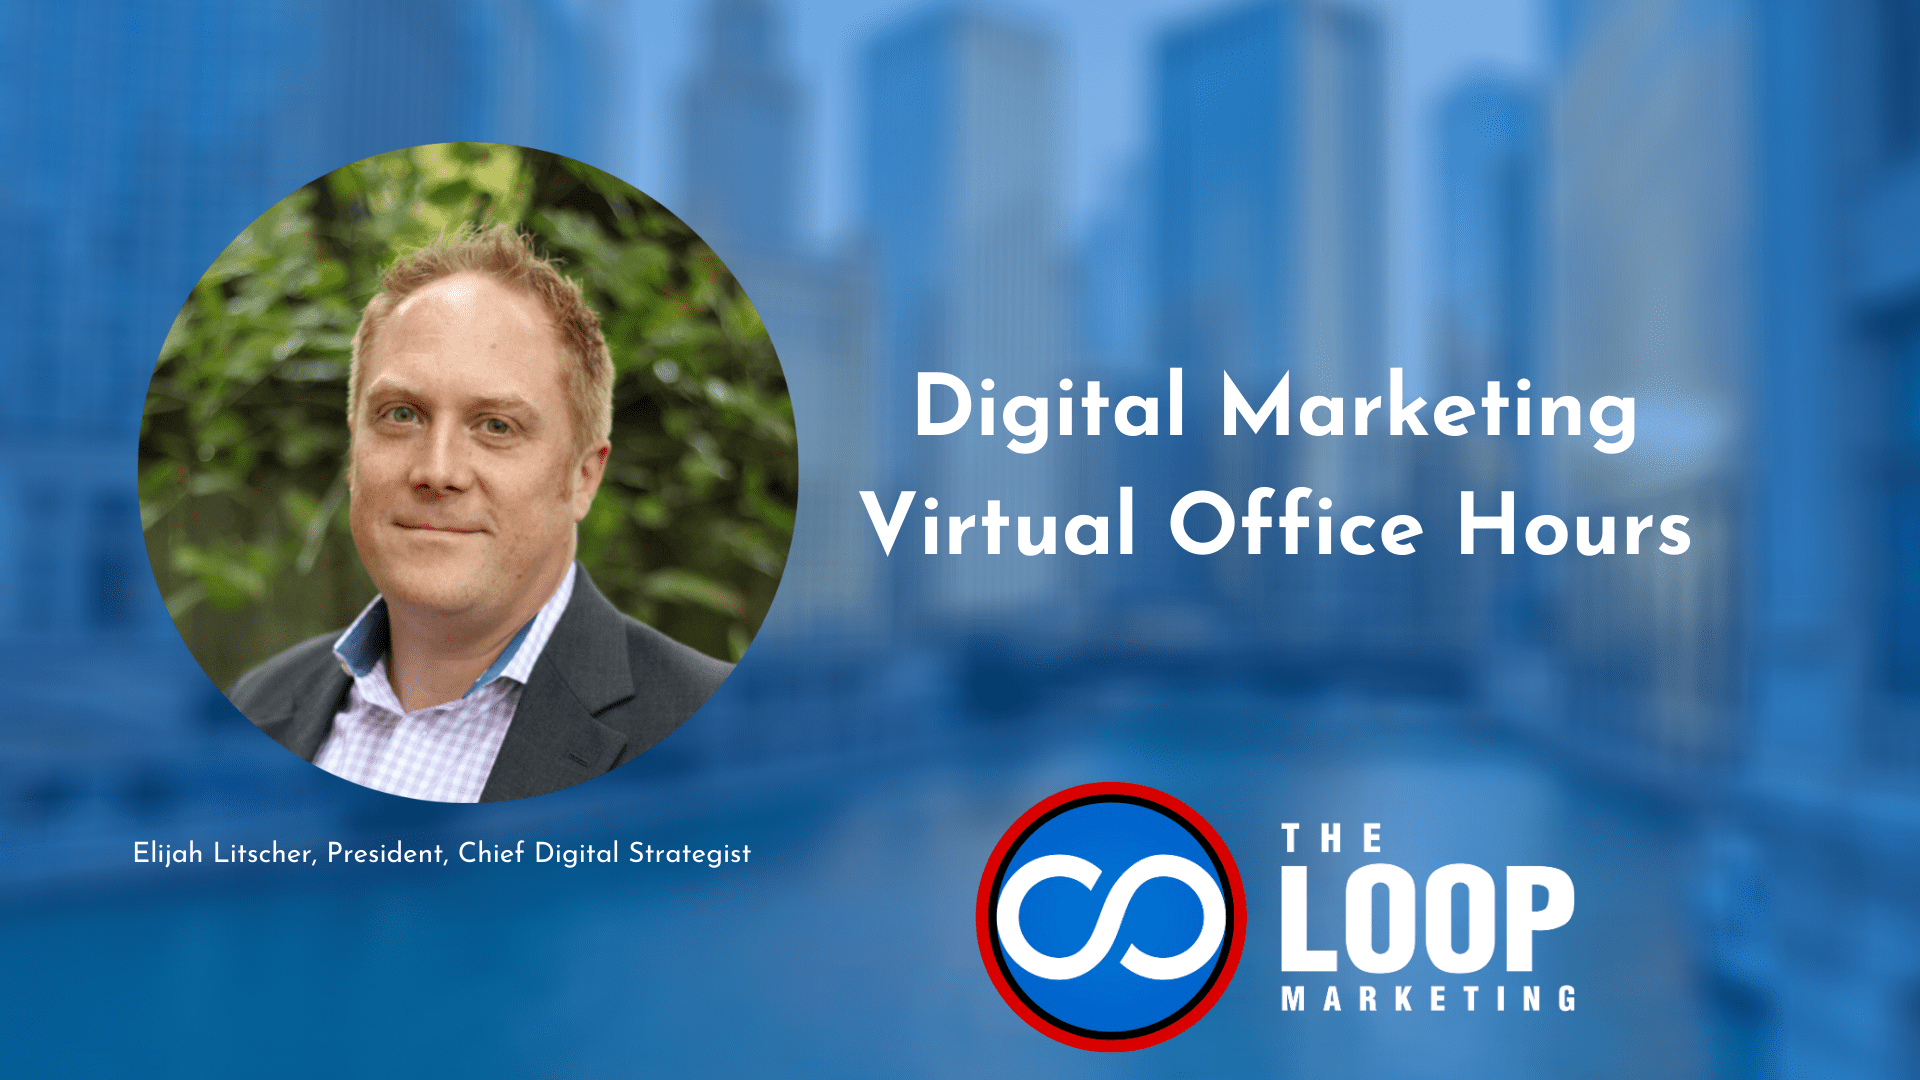 Digital Marketing Virtual Hours